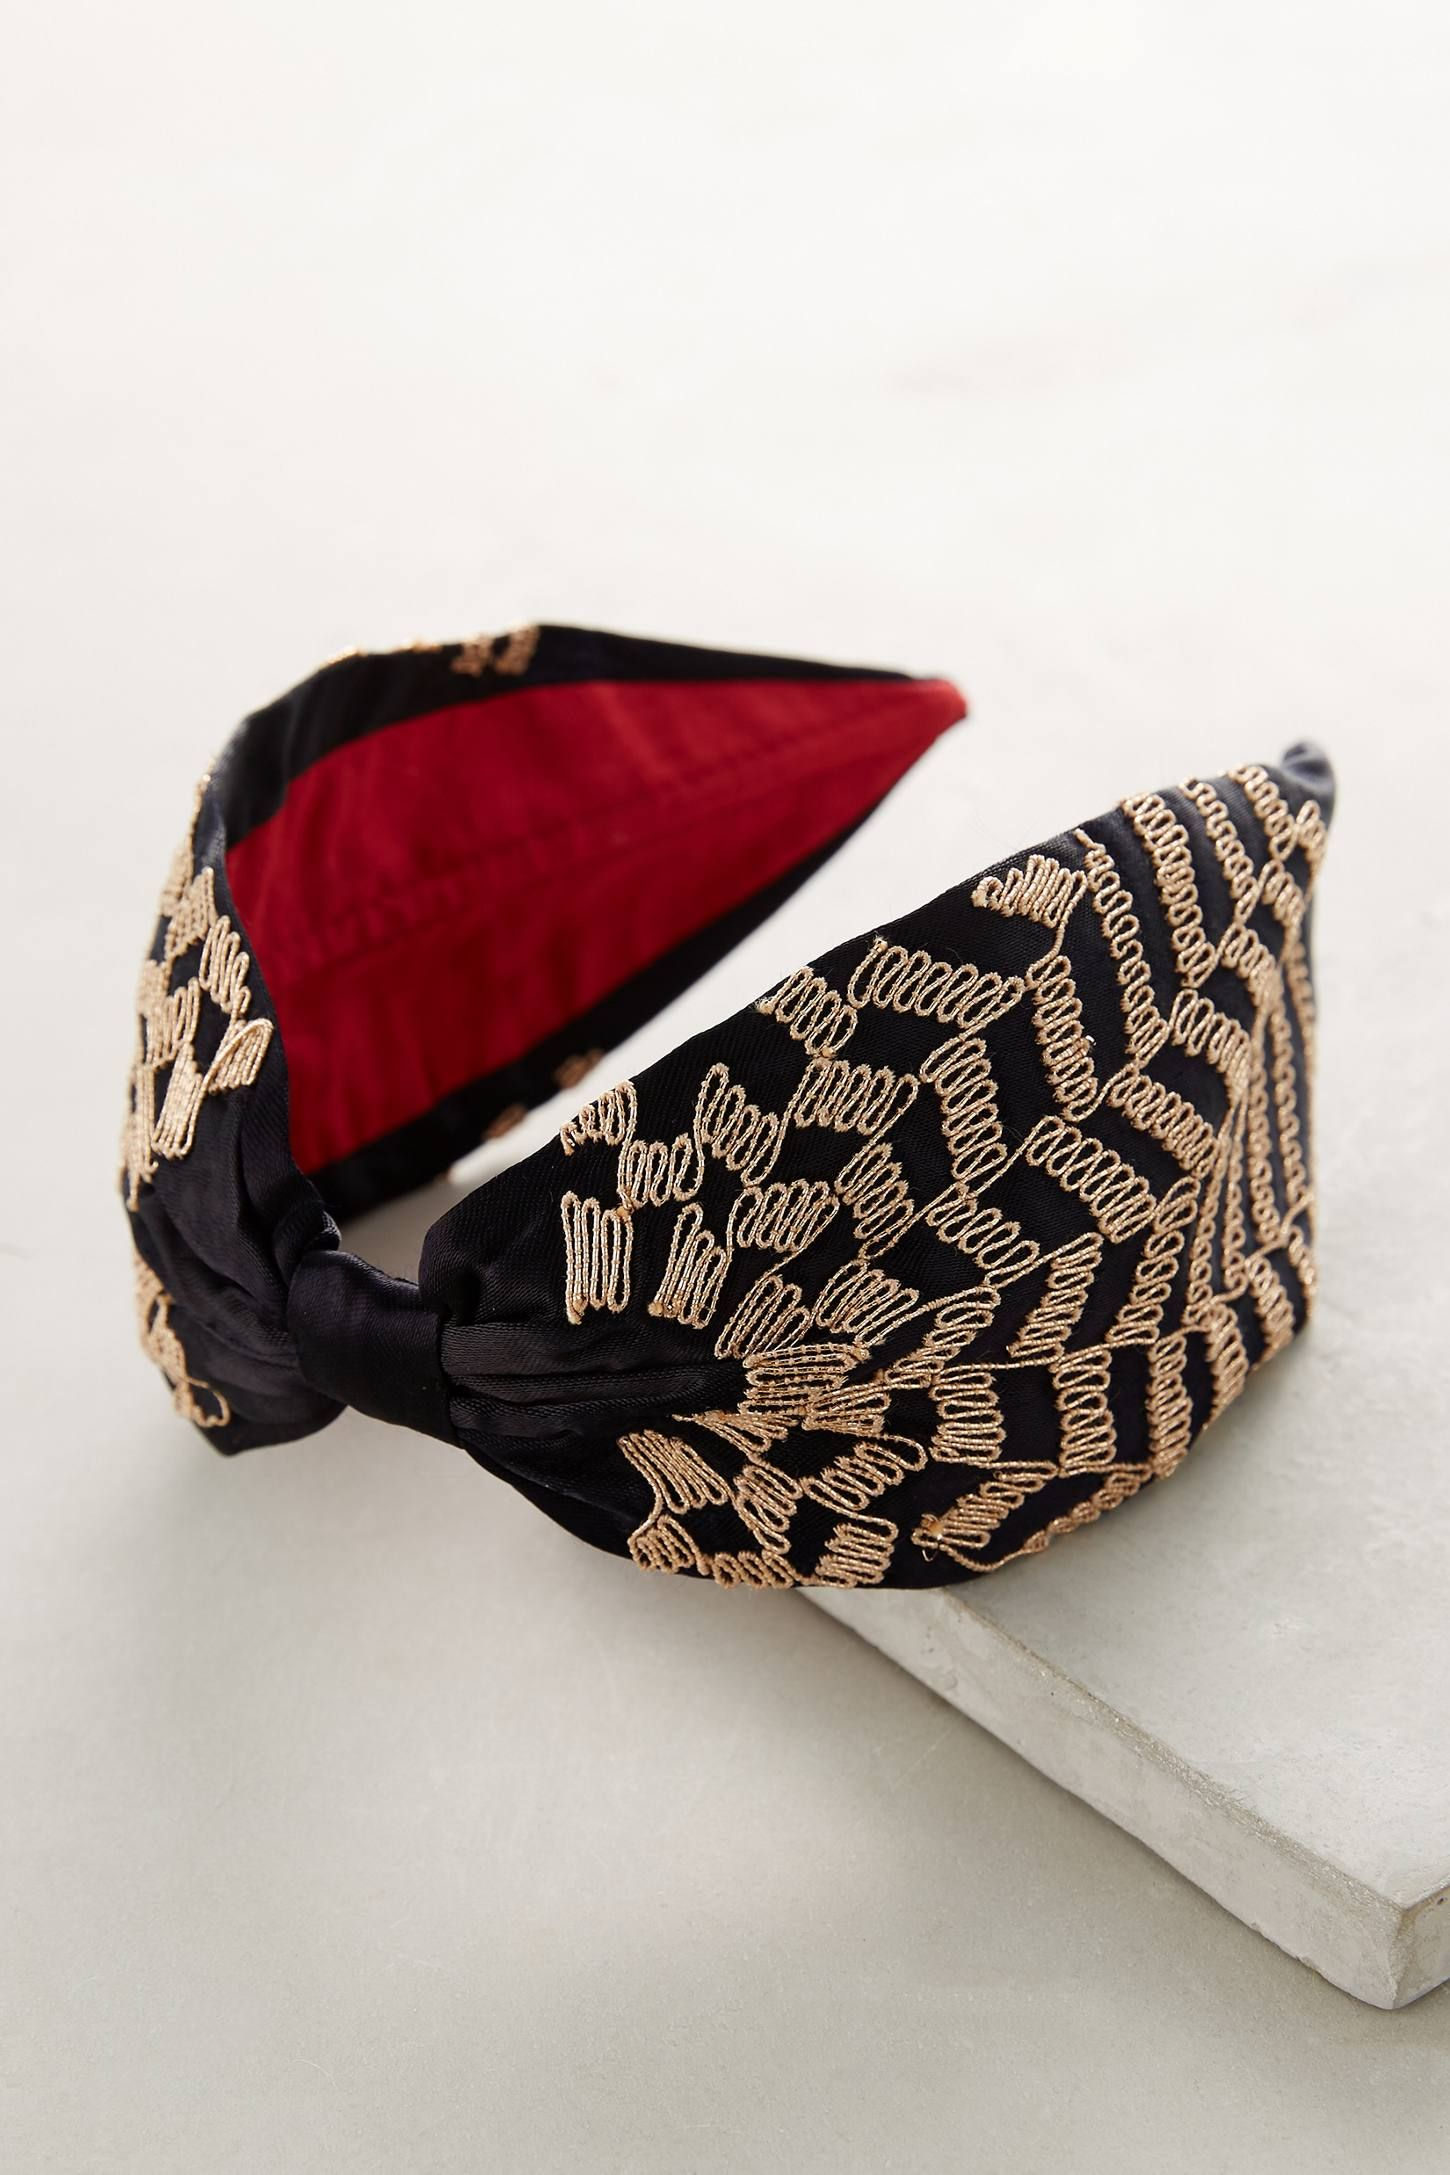 Anthropologie Striped Bow Headband QjMjT